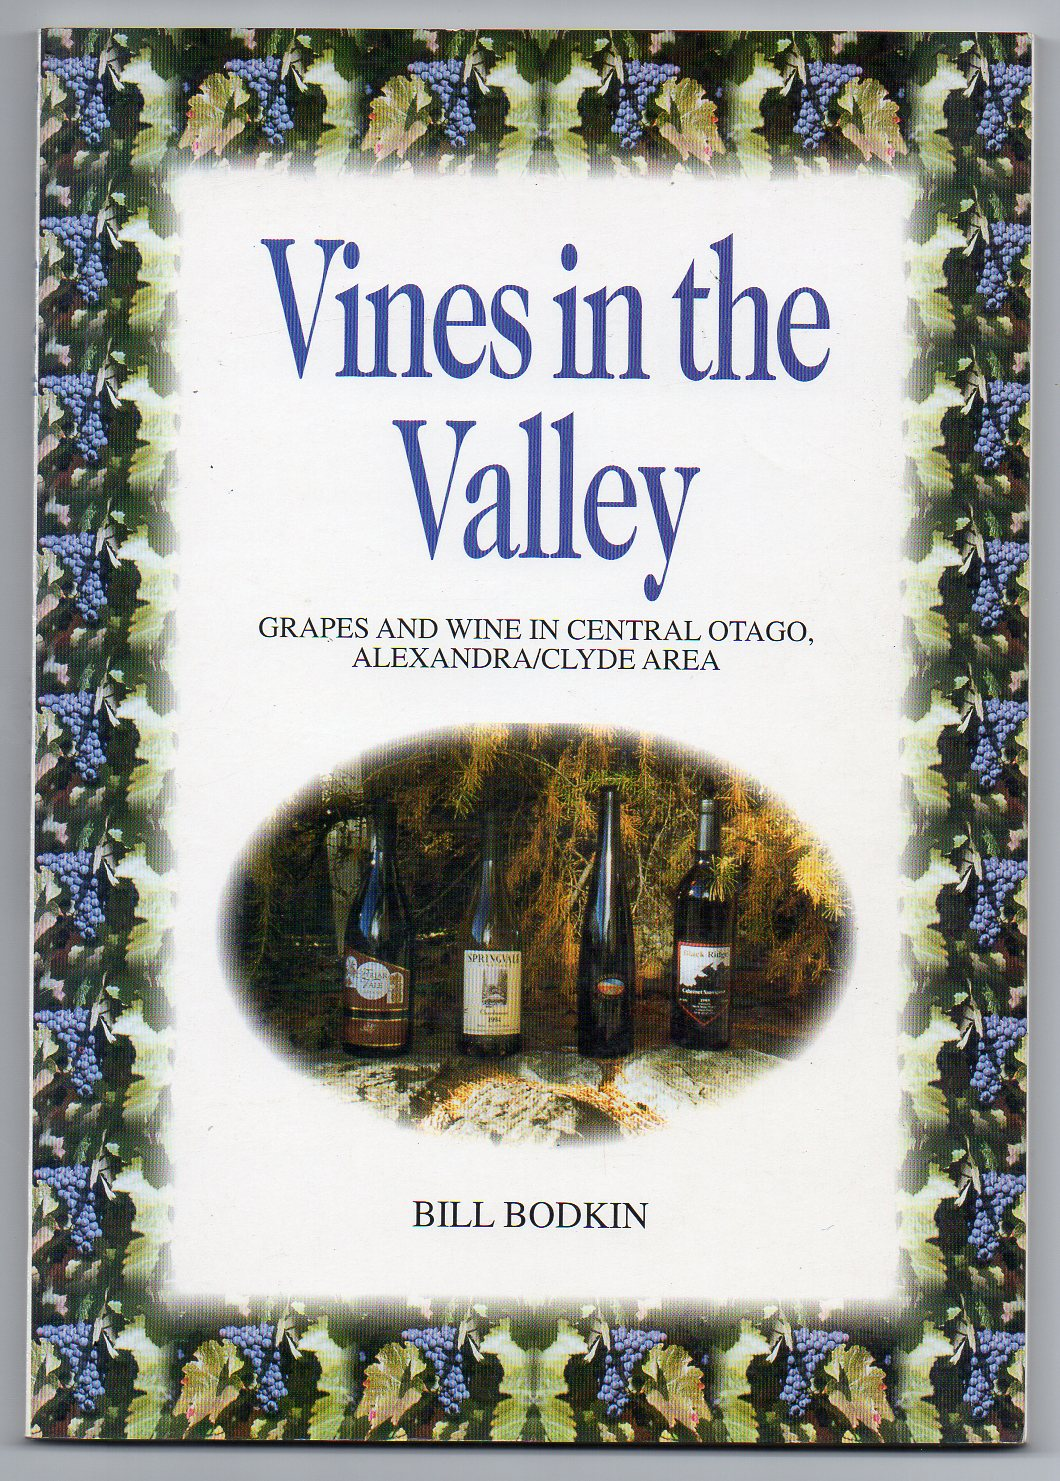 Image for Vines in the Valley - The Development of the Wine Growing Industry in the Alexandra/Clyde District of Central Otago 1864-1997 - A Personal Perspective